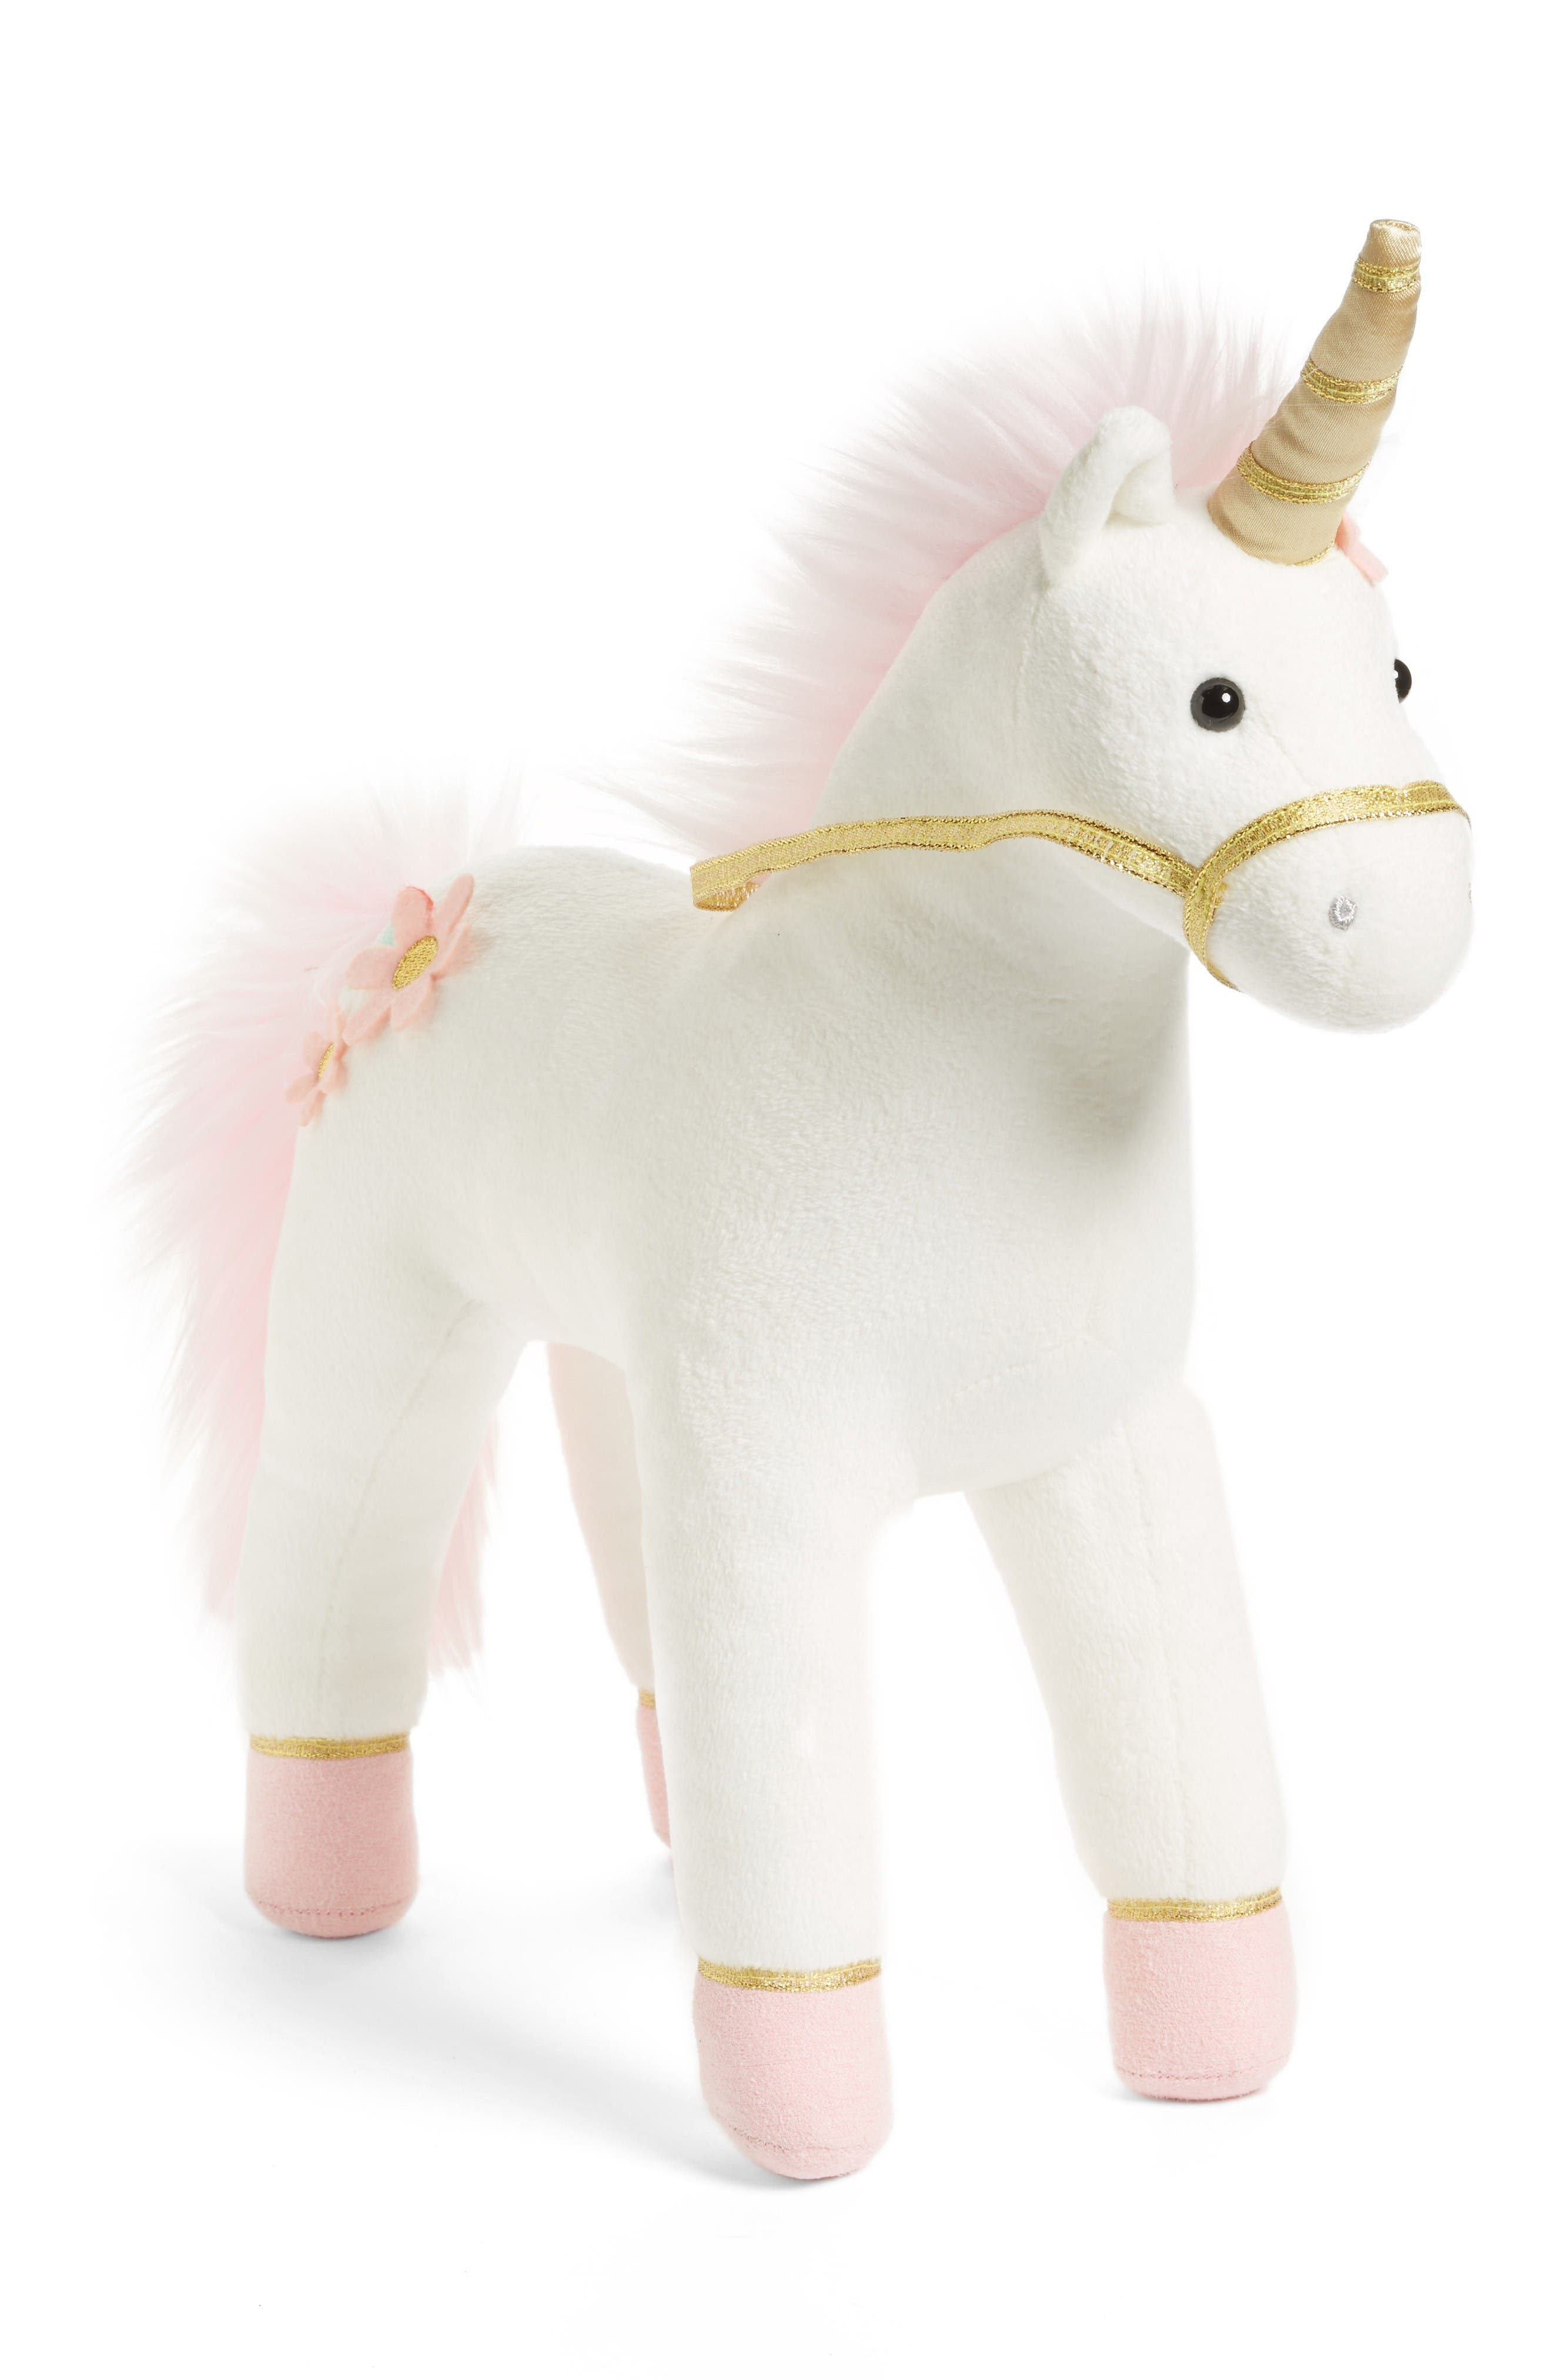 Main Image - Gund LilyRose Unicorn Stuffed Animal